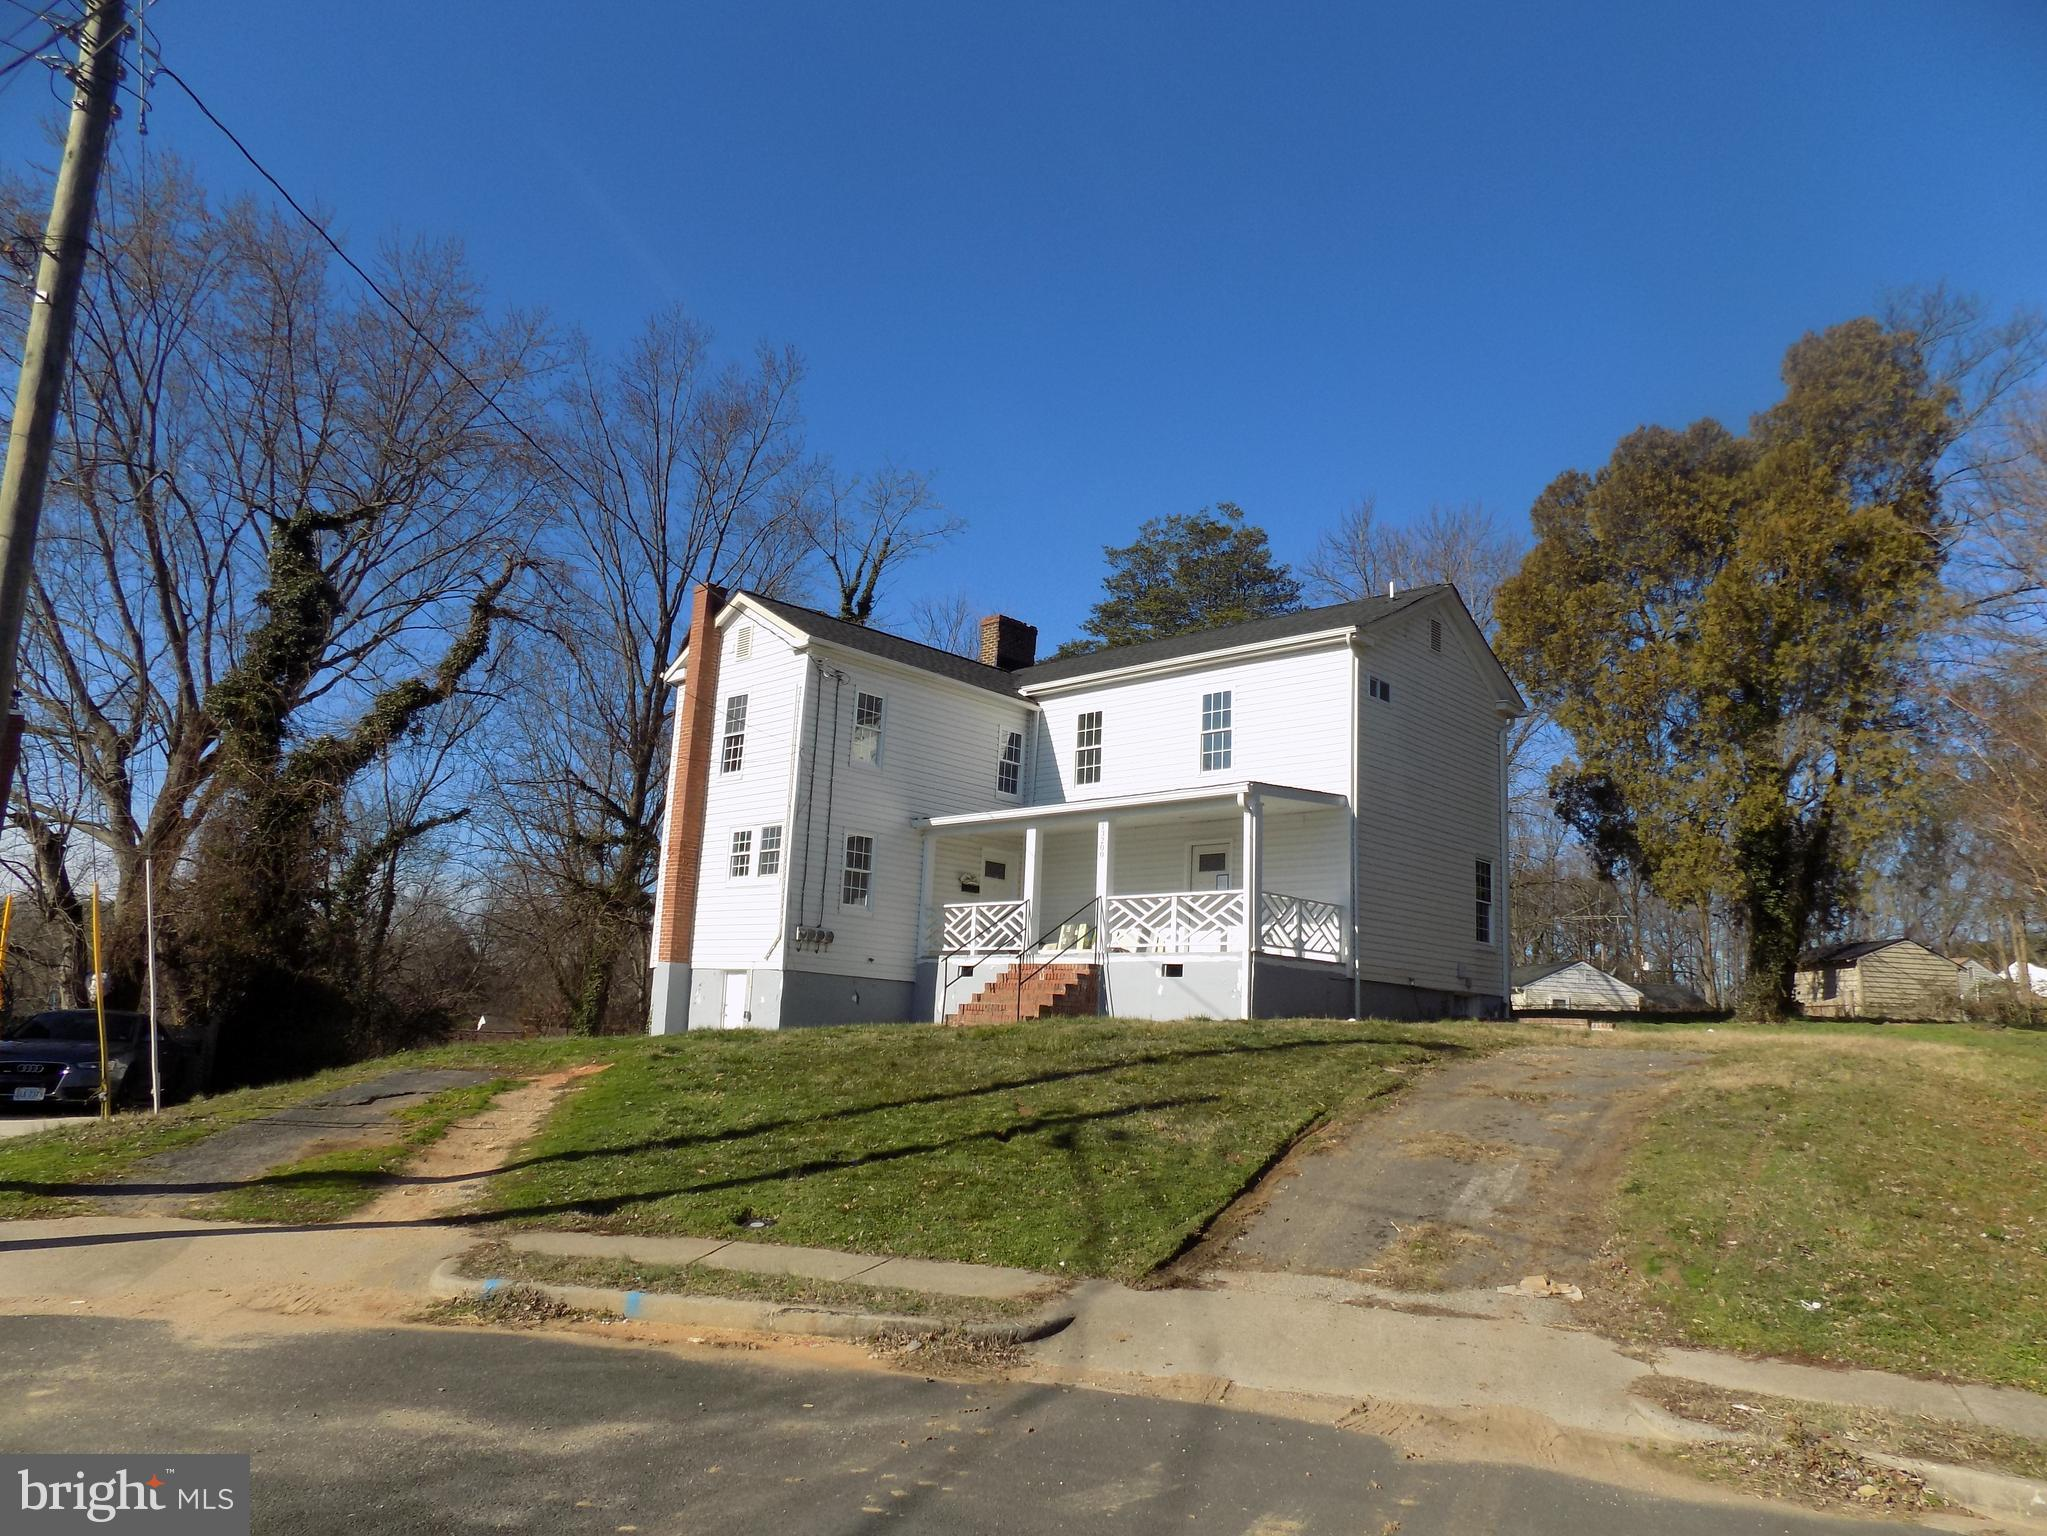 Bring your flashlight and creativity to complete this spacious home.  About 70% complete, renovated